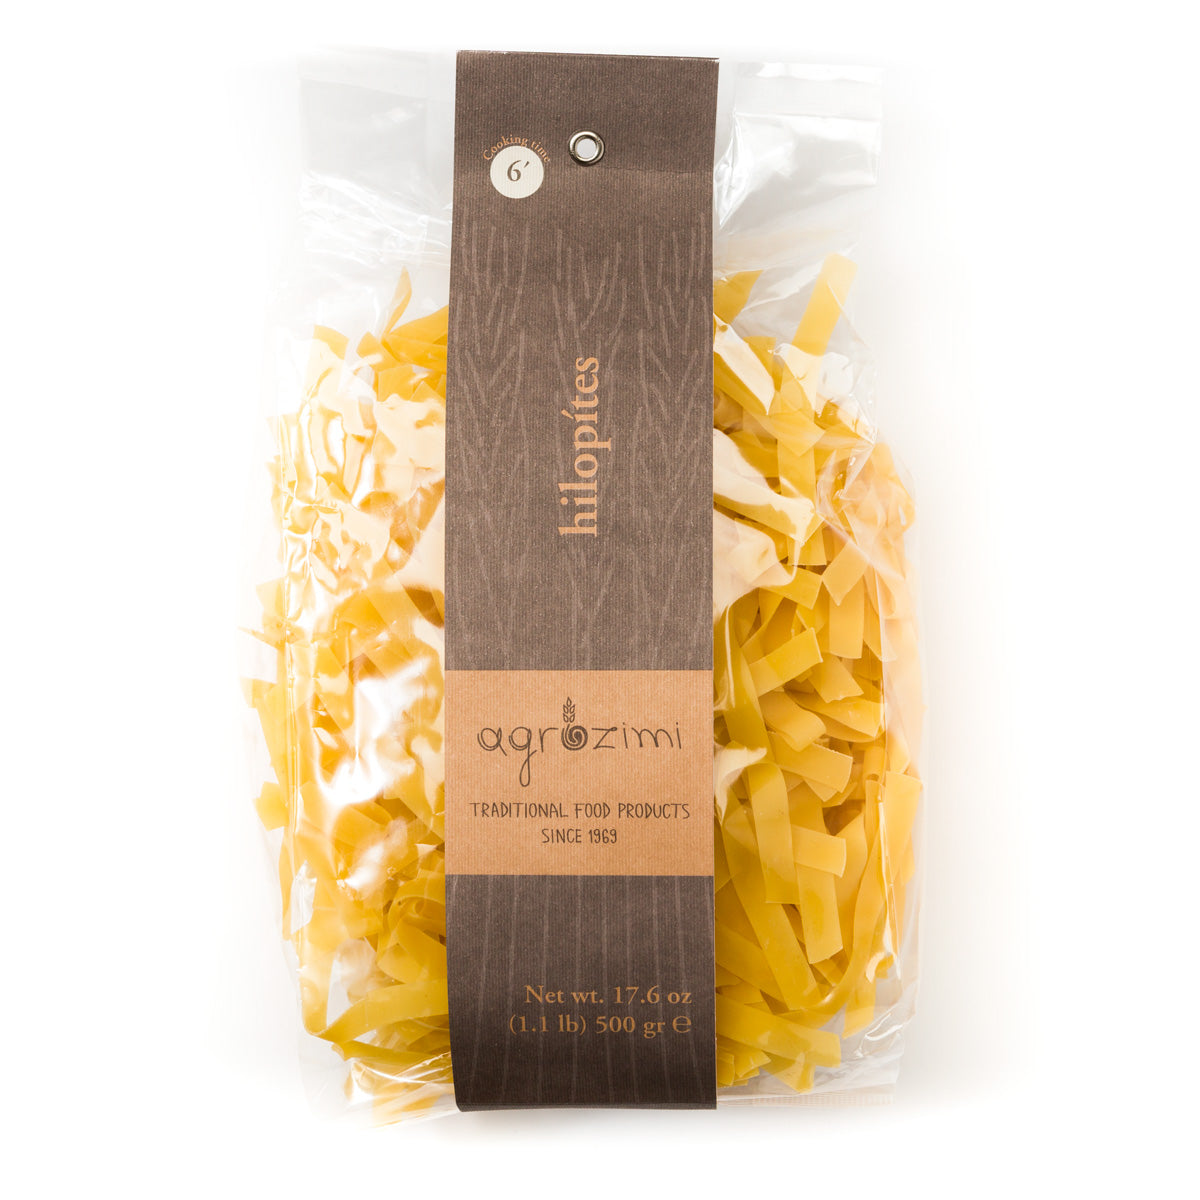 Agrozimi Traditional Egg & Milk Hilopites, Greek Artisanal Fettuccine  Edit alt text